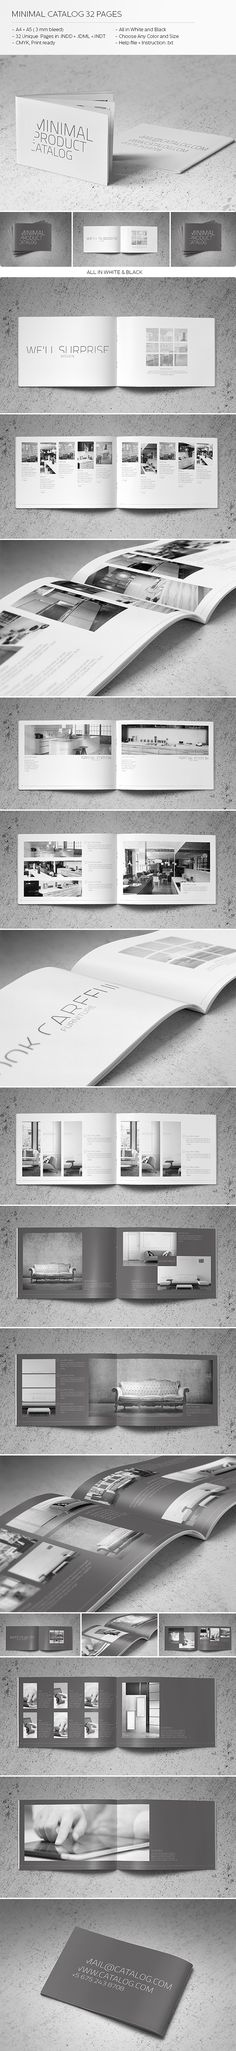 Minimal Catalog Layout Design by Realstar #layout #design #brochure